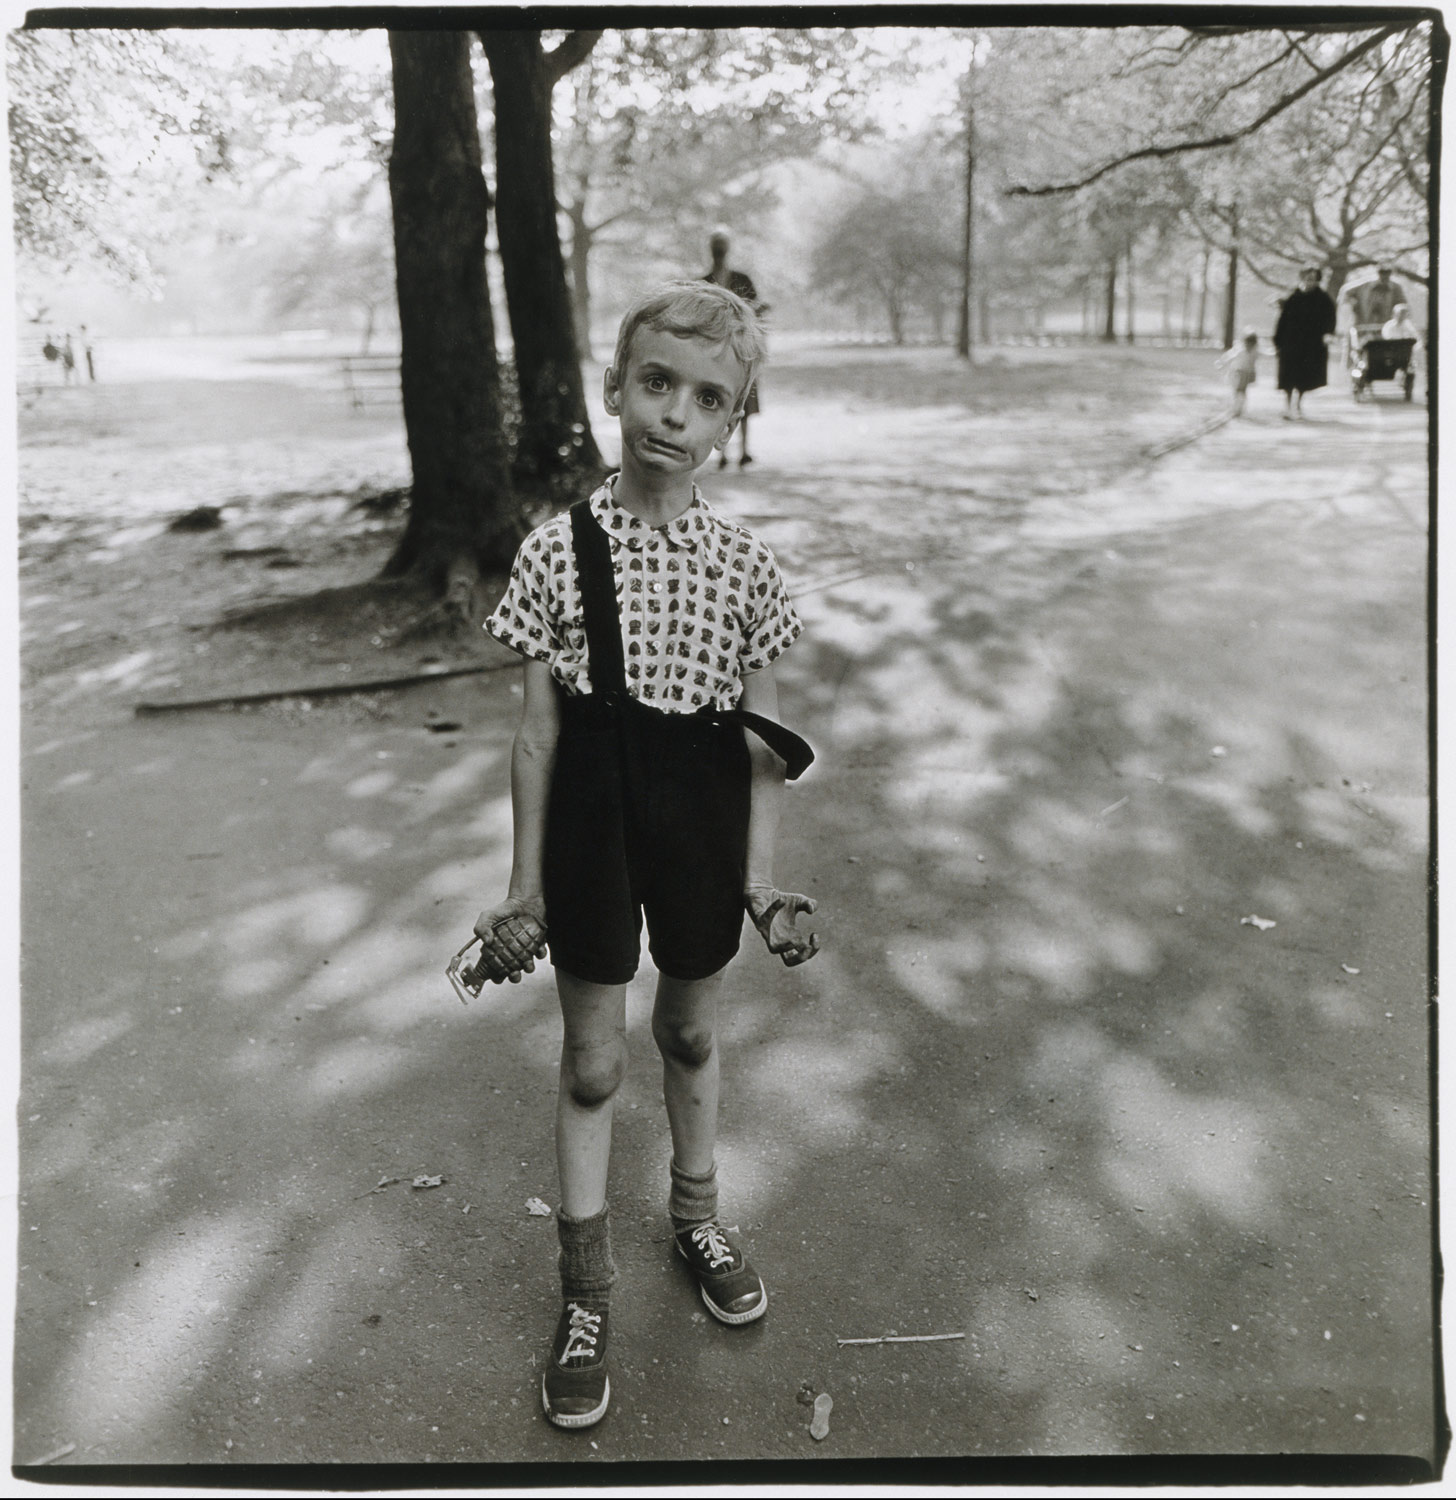 Child with a toy hand grenade in Central Park, N.Y.C. Copyright © 1970 The Estate of Diane Arbus